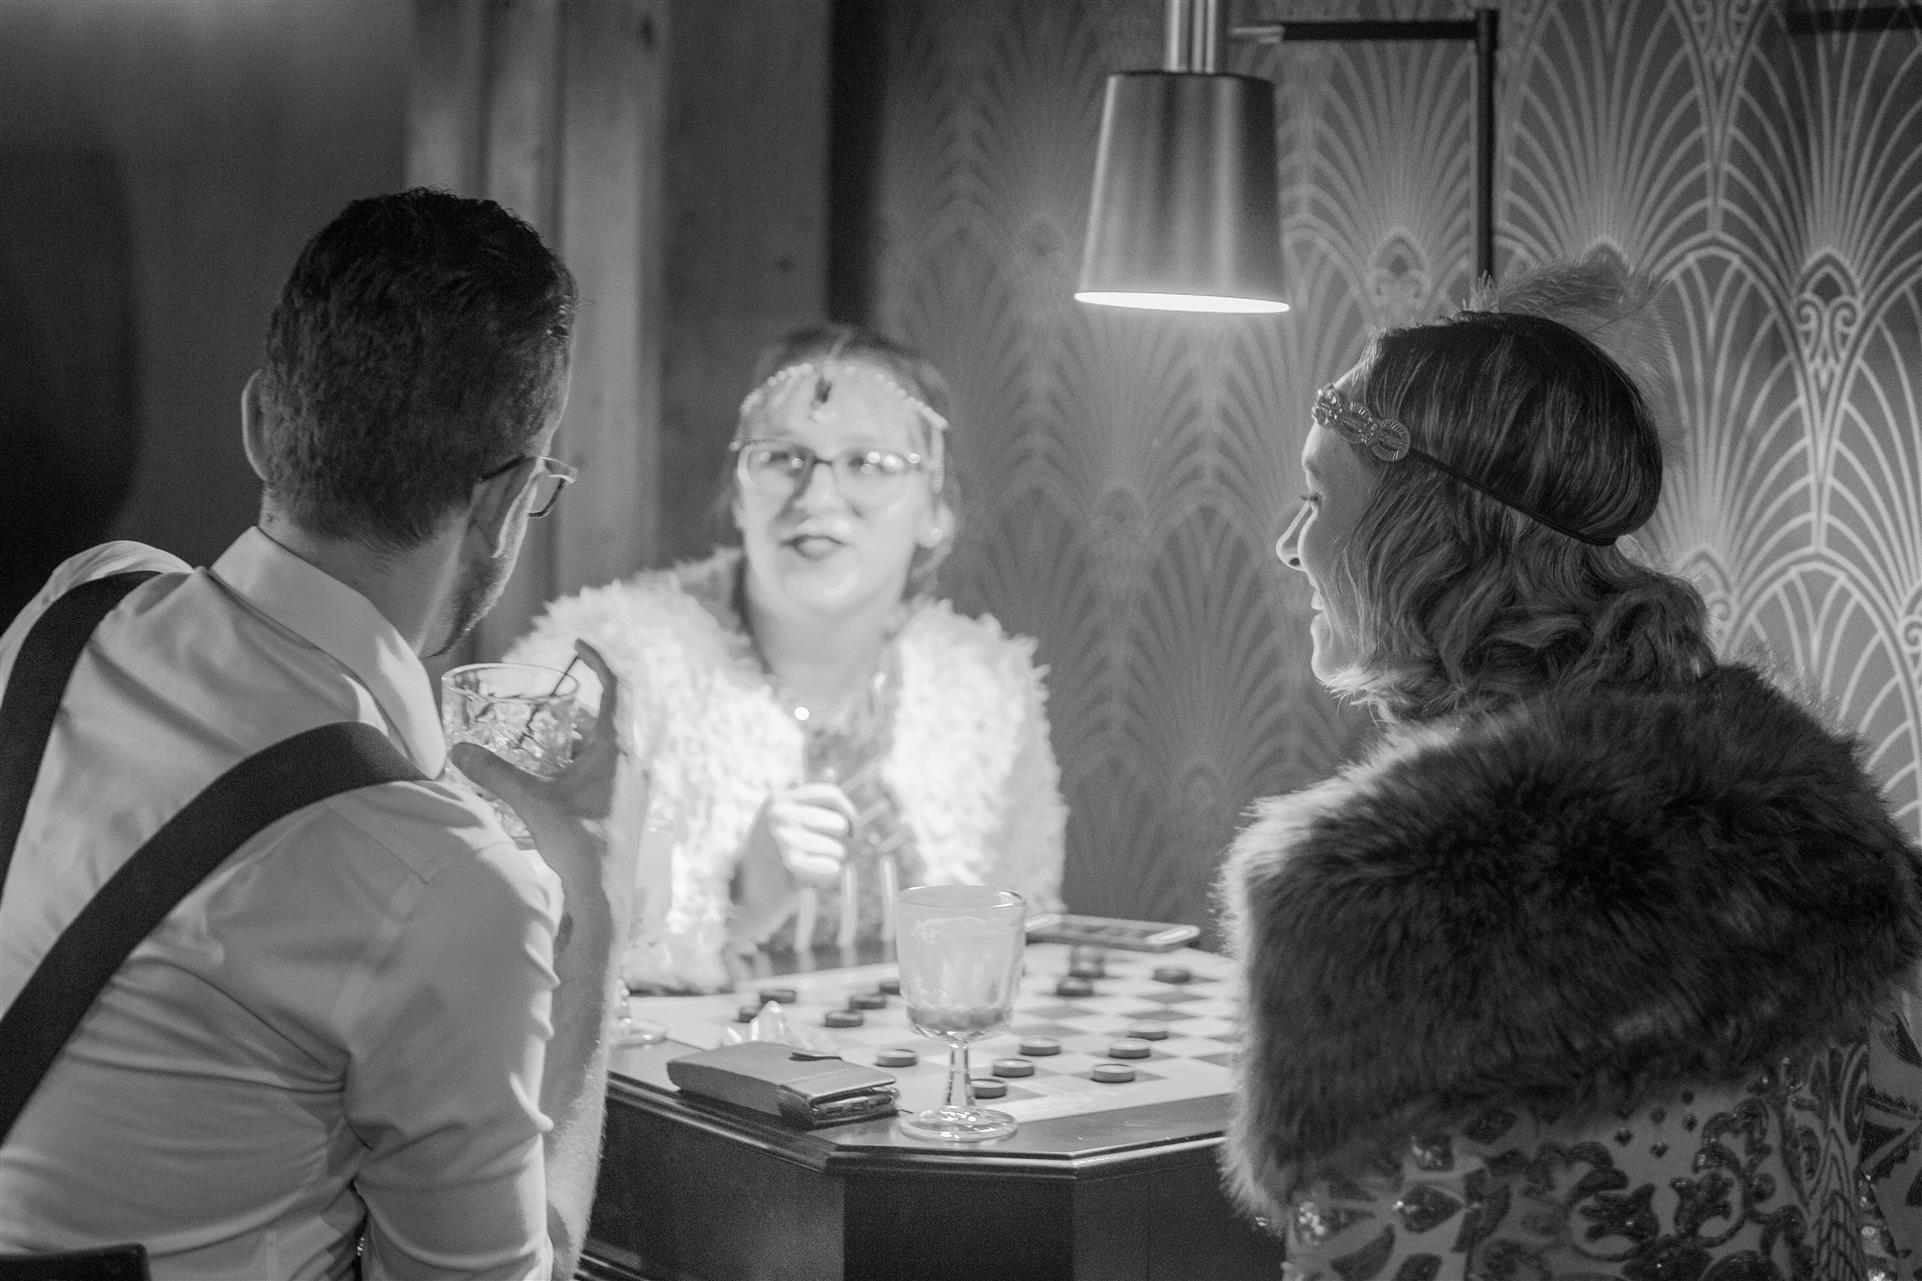 Two men and a woman playing checkers in 1920s era clothing